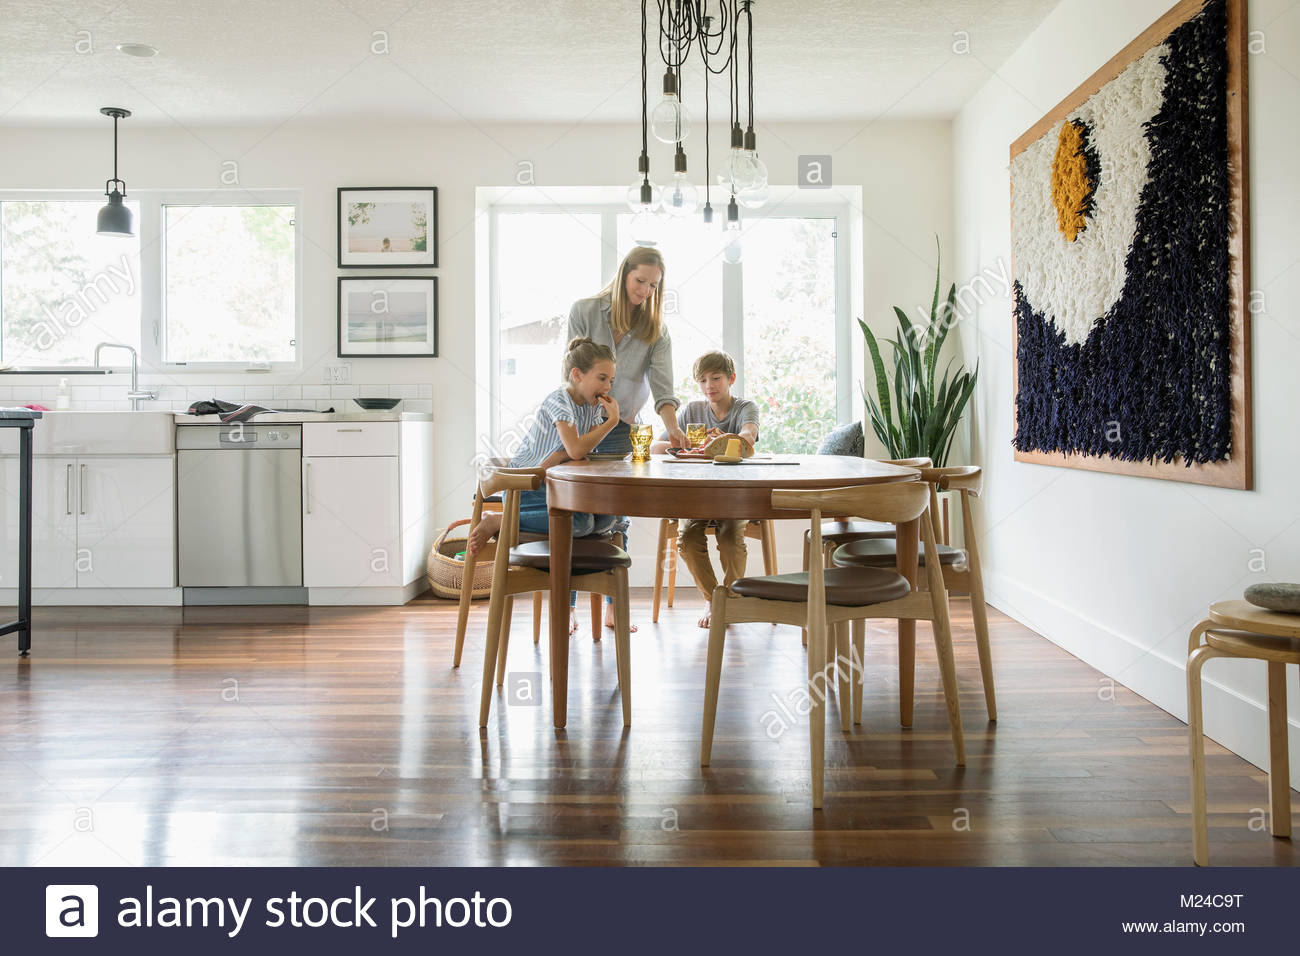 Family eating at kitchen table - Stock Image